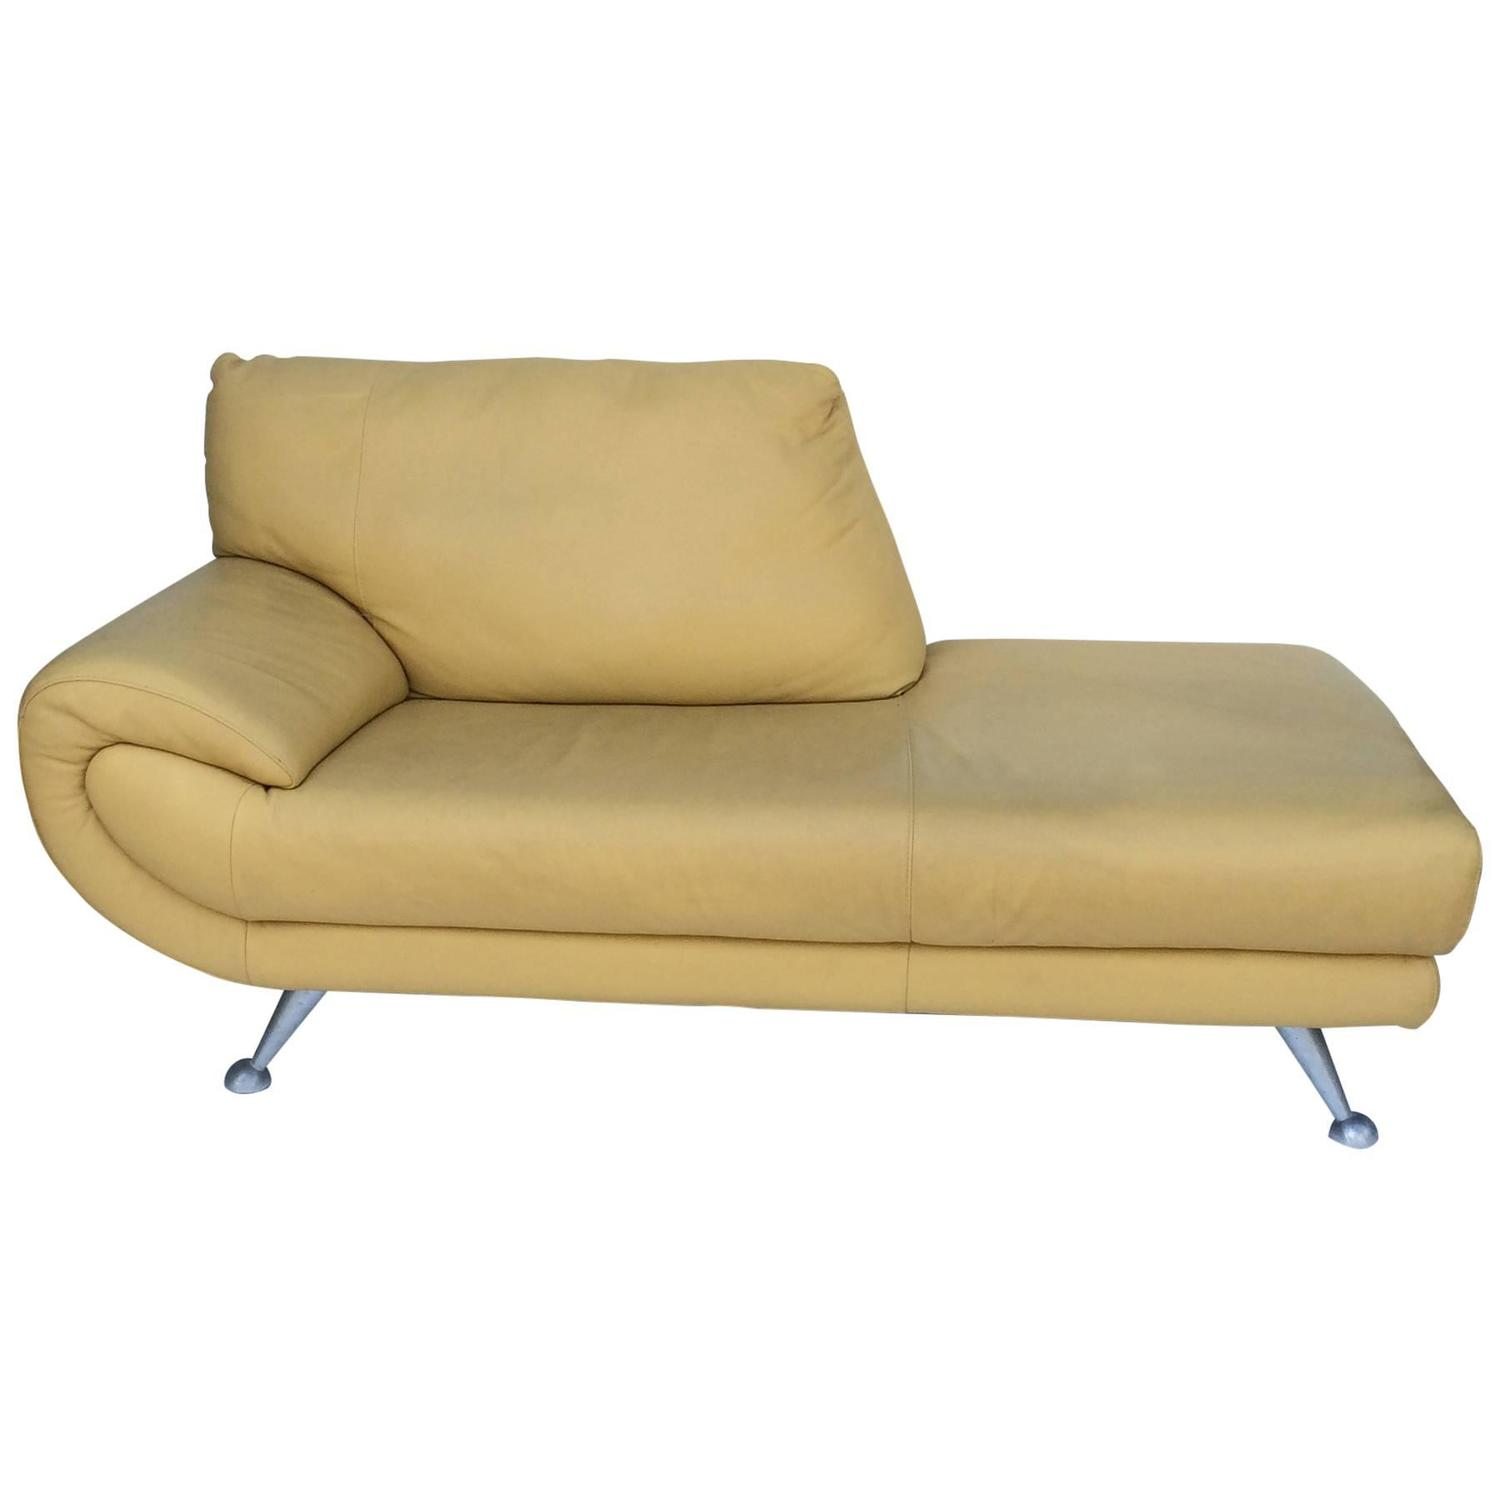 Nicoletti Leather Chaise Lounge For Sale at 1stdibs